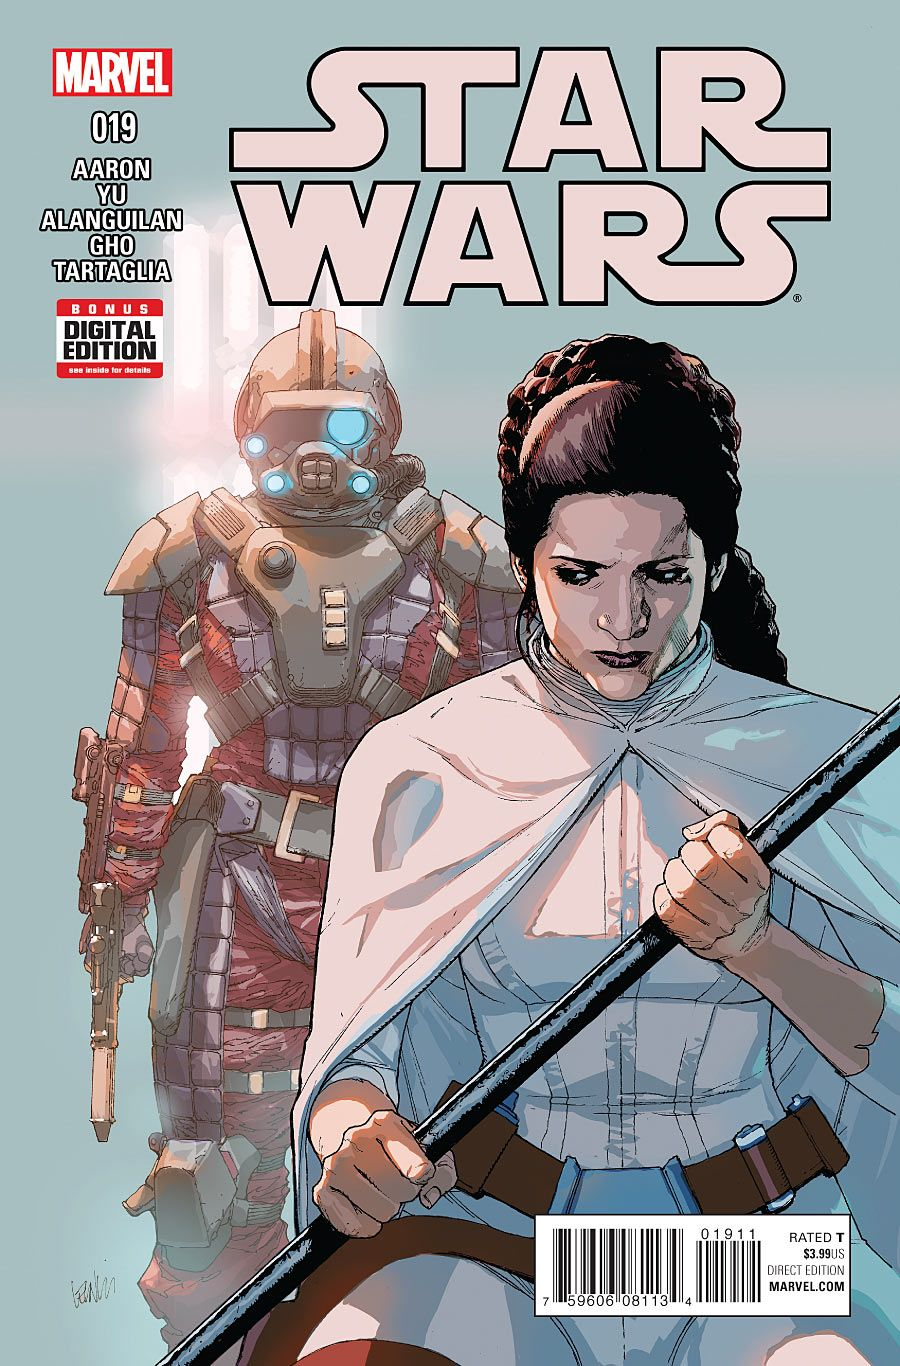 Star Wars #19 Review